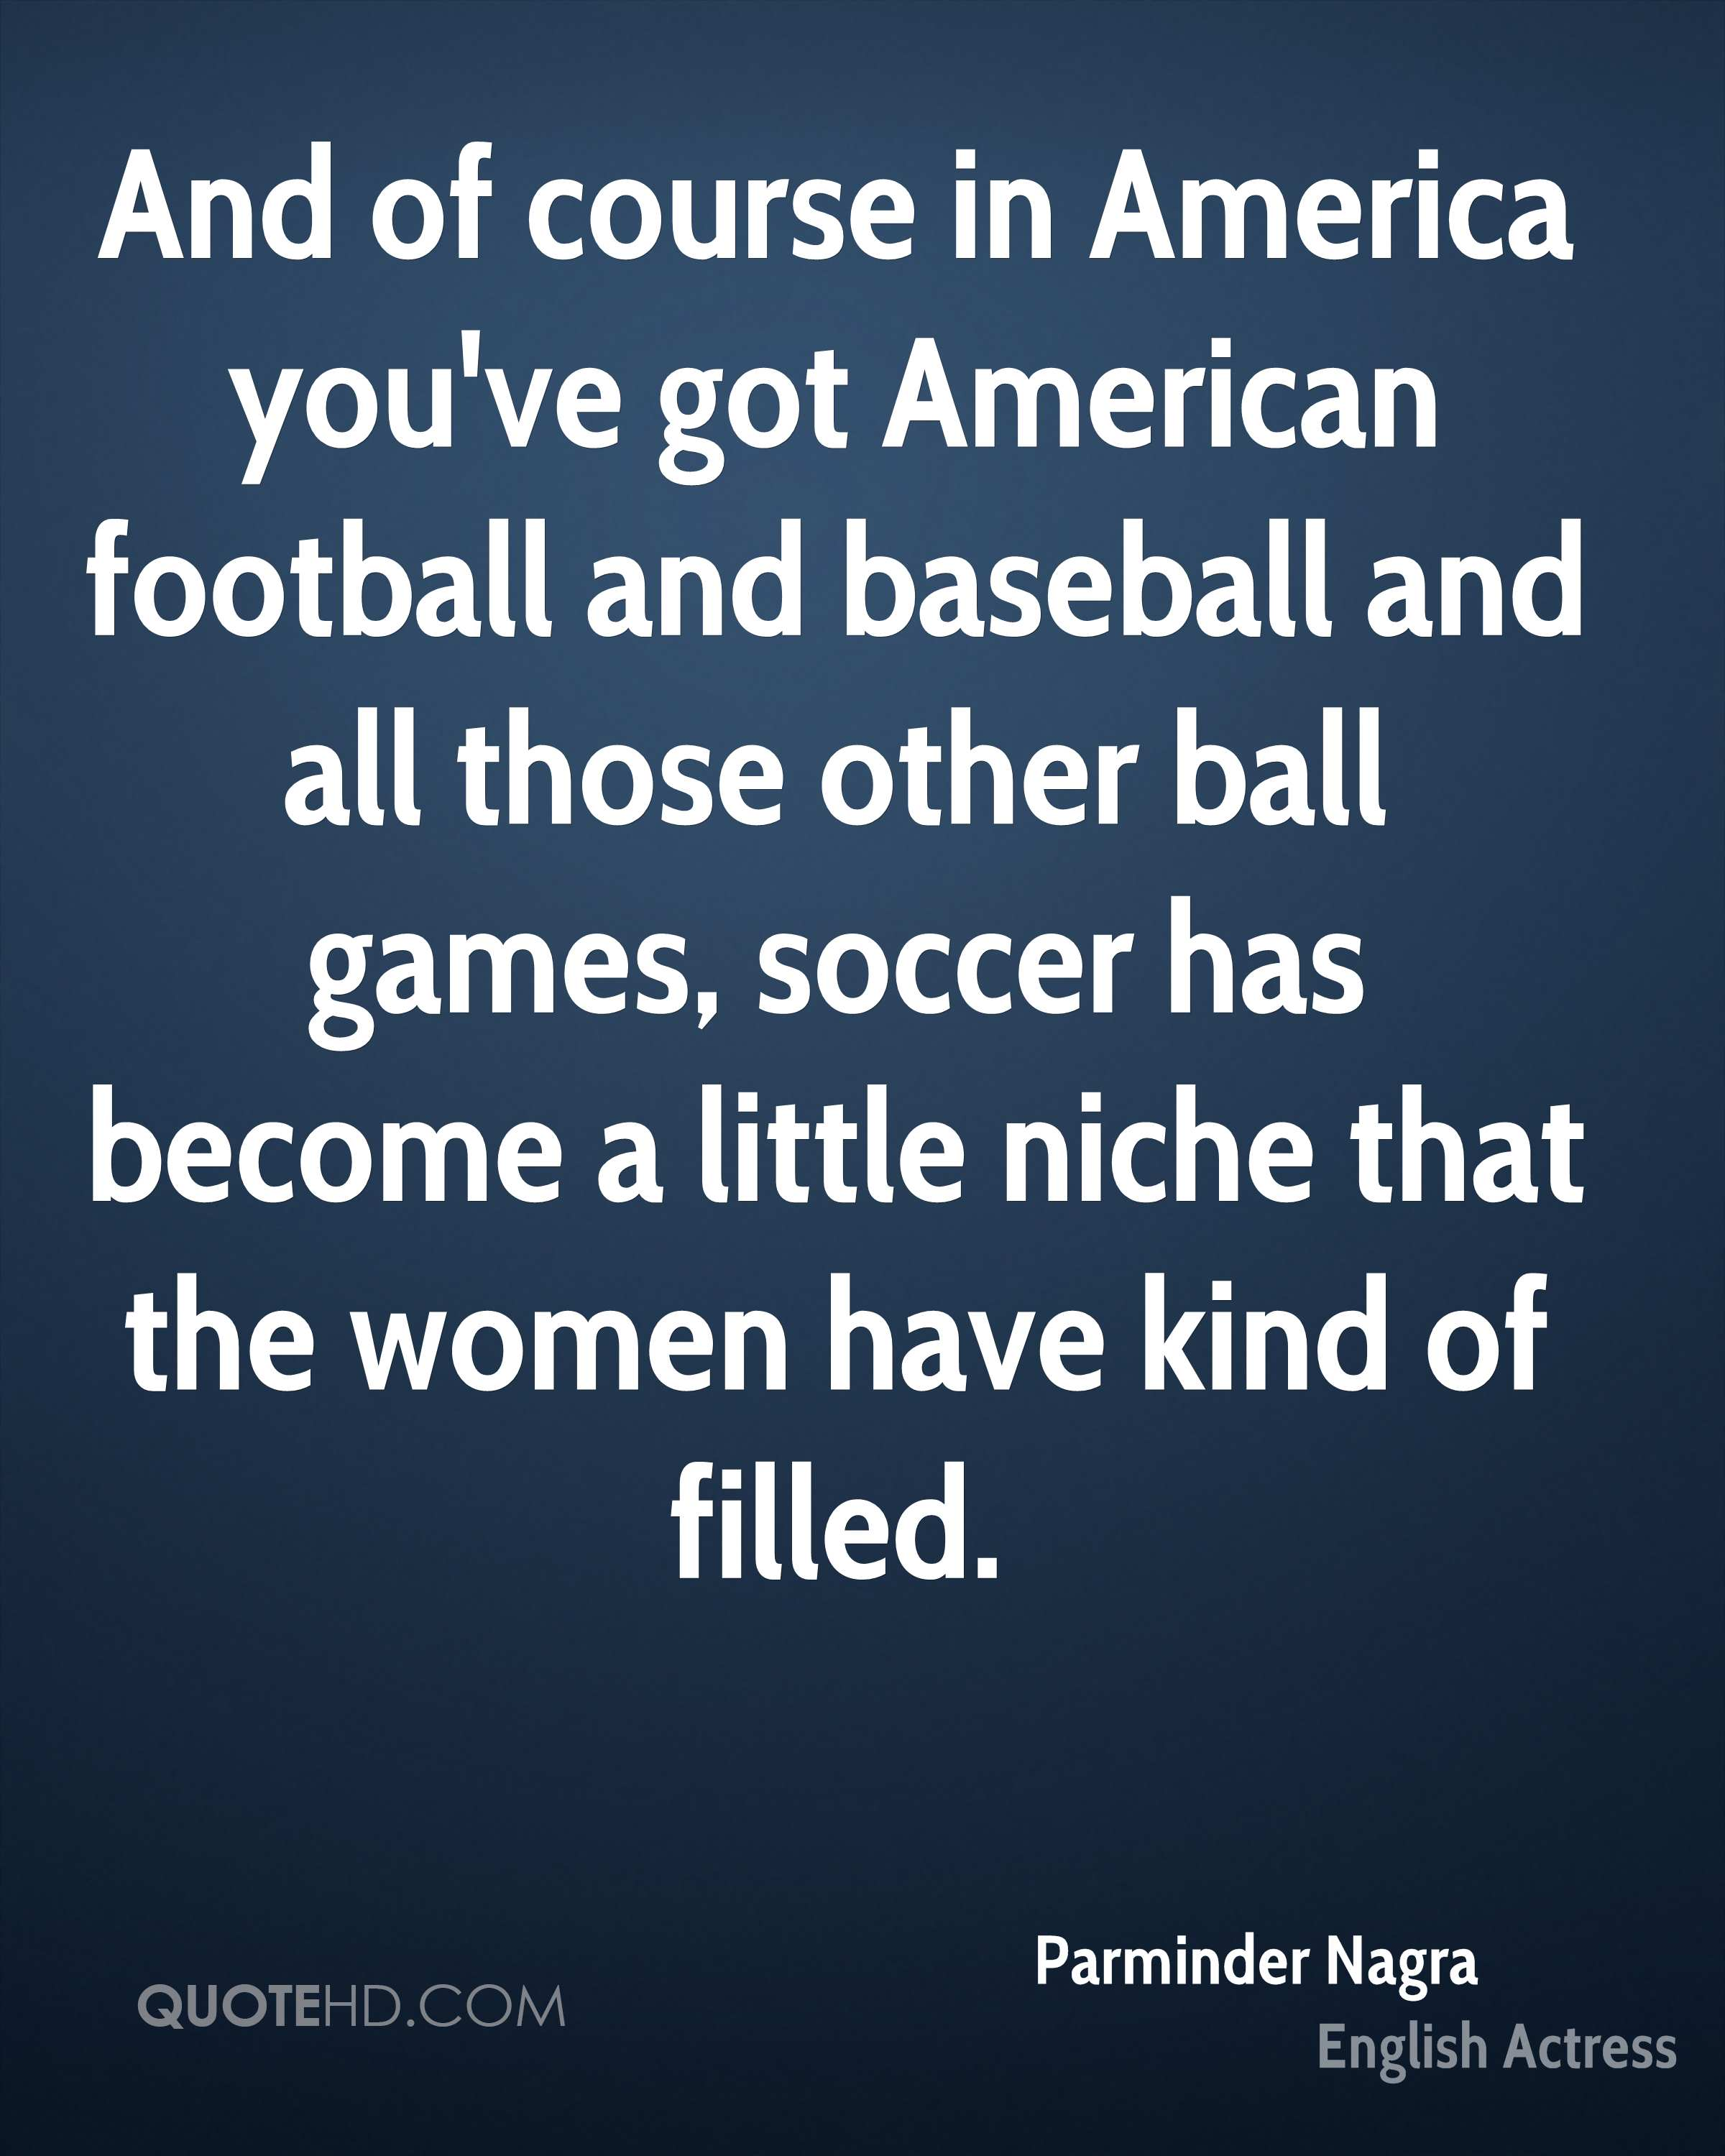 And of course in America you've got American football and baseball and all those other ball games, soccer has become a little niche that the women have kind of filled.